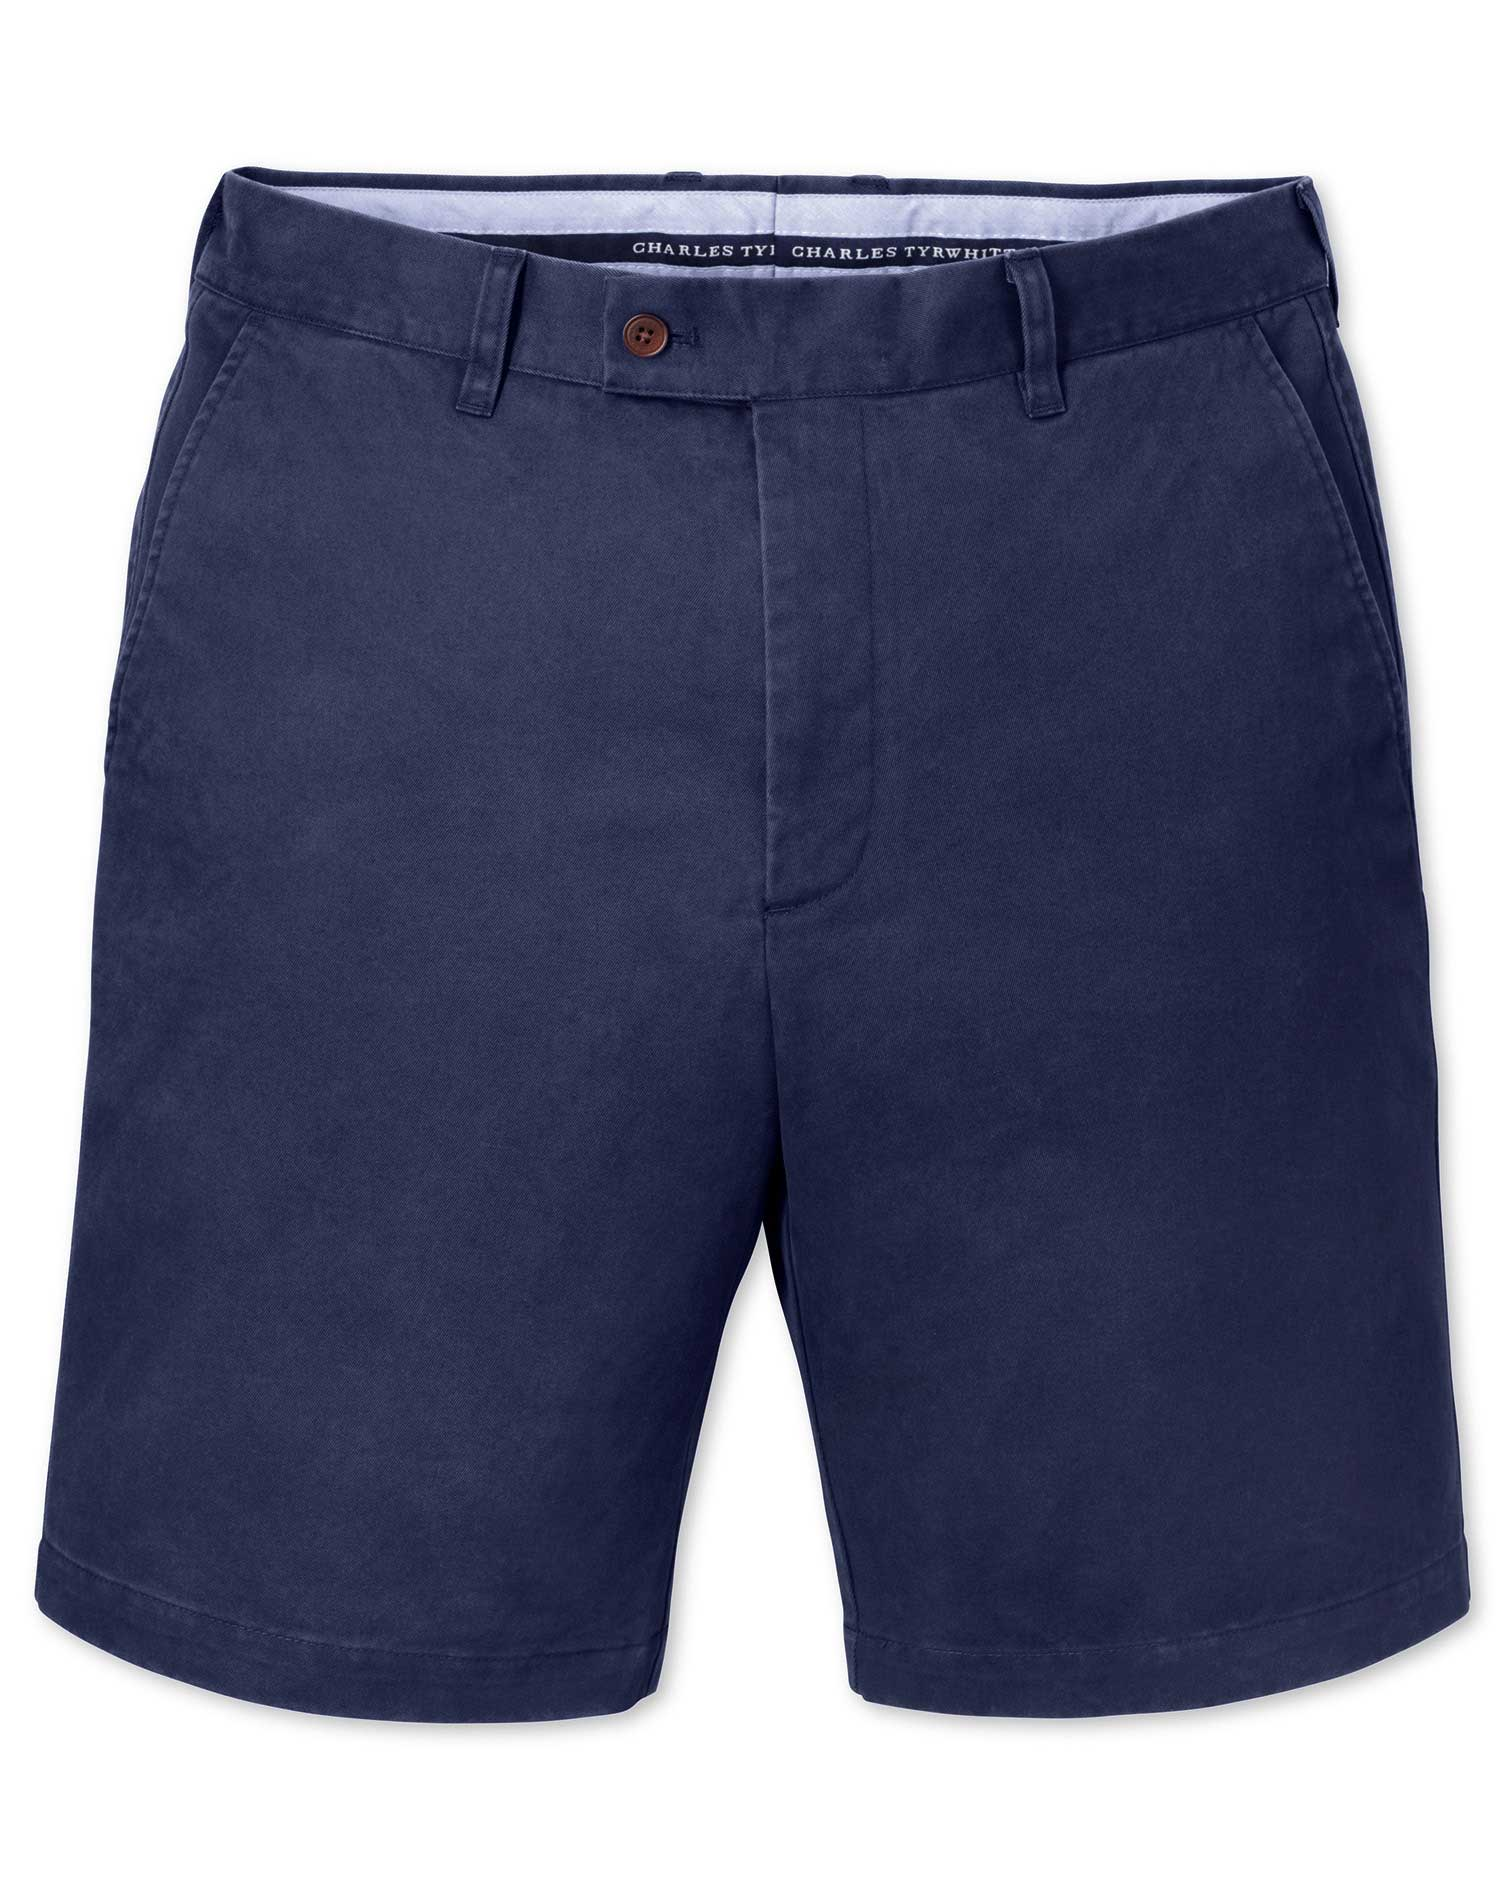 Blue Slim Fit Chino Cotton Shorts Size 38 by Charles Tyrwhitt